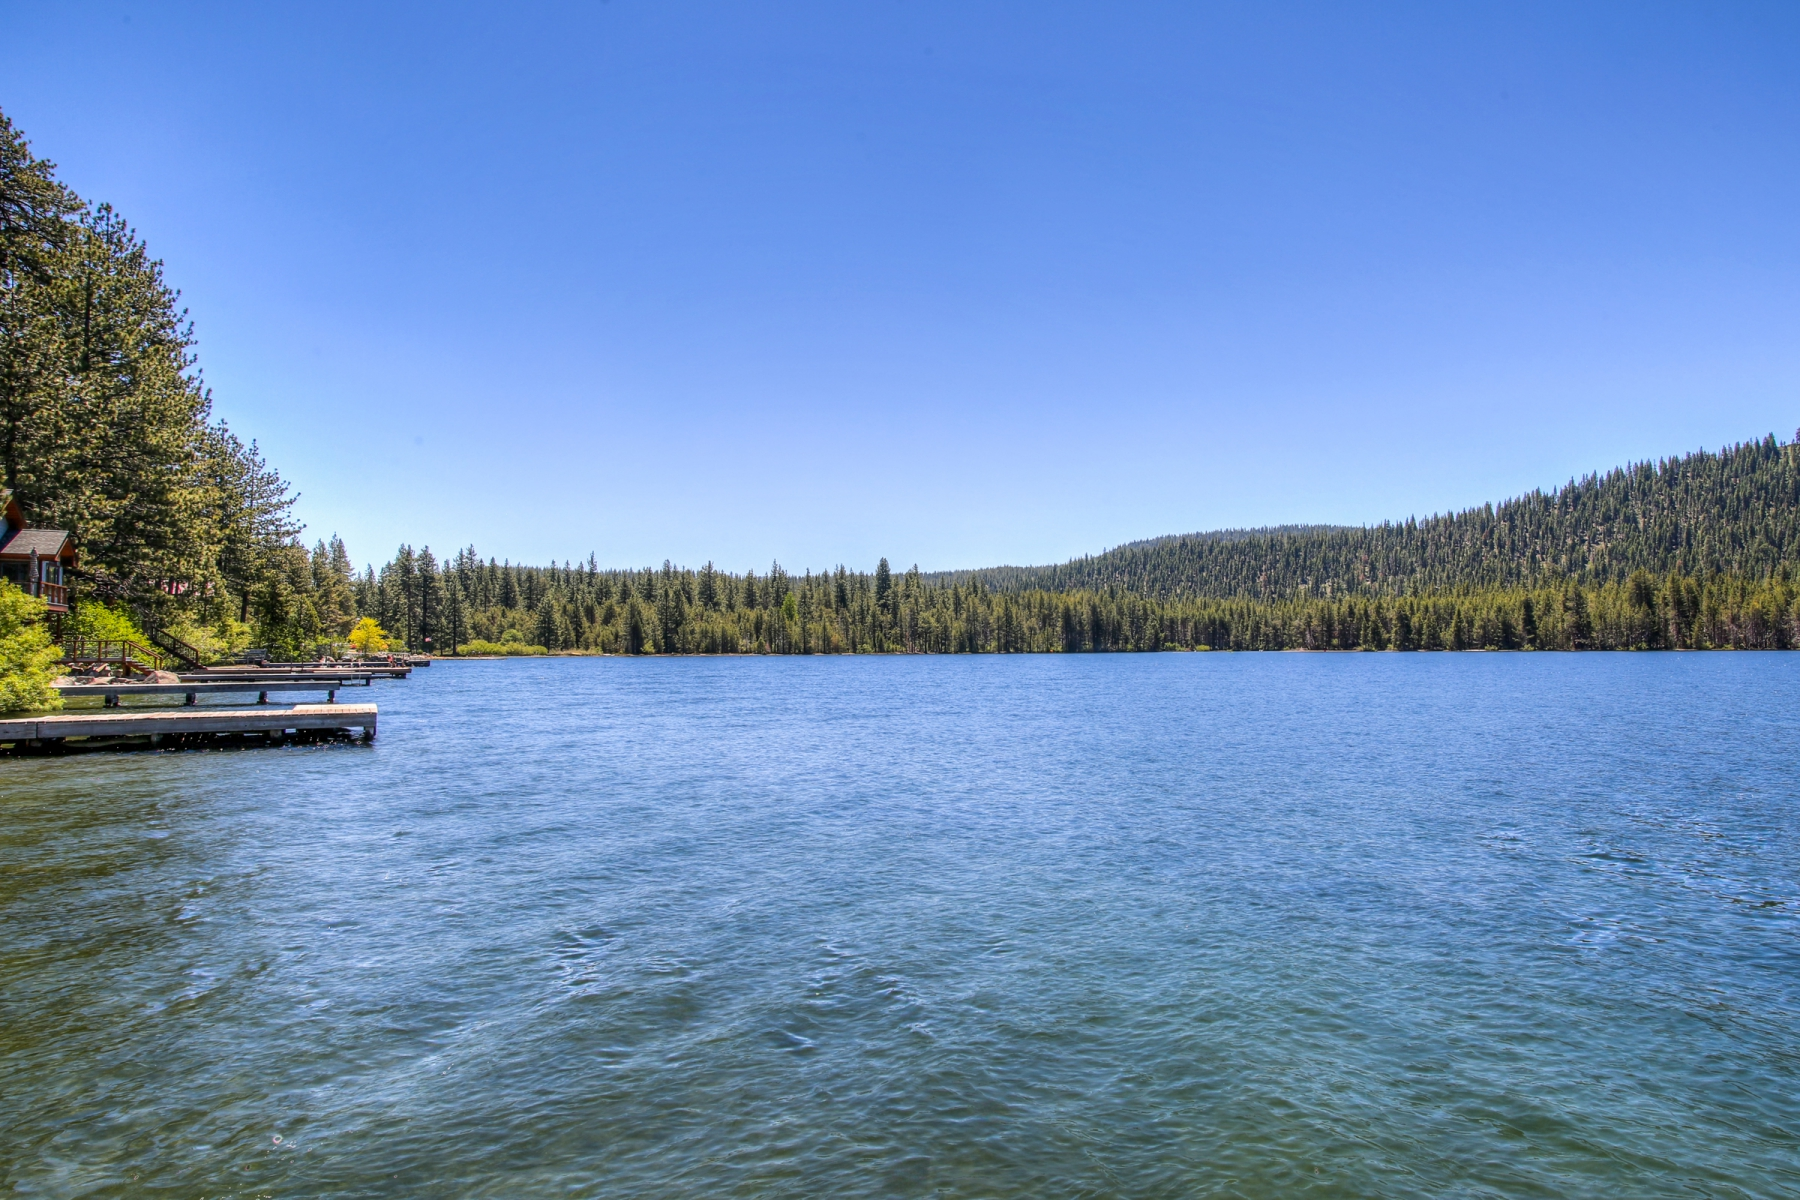 Additional photo for property listing at 13794 Donner Pass Road, Truckee, California 96161 13794 Donner Pass Road 特拉基, 加利福尼亚州 96161 美国